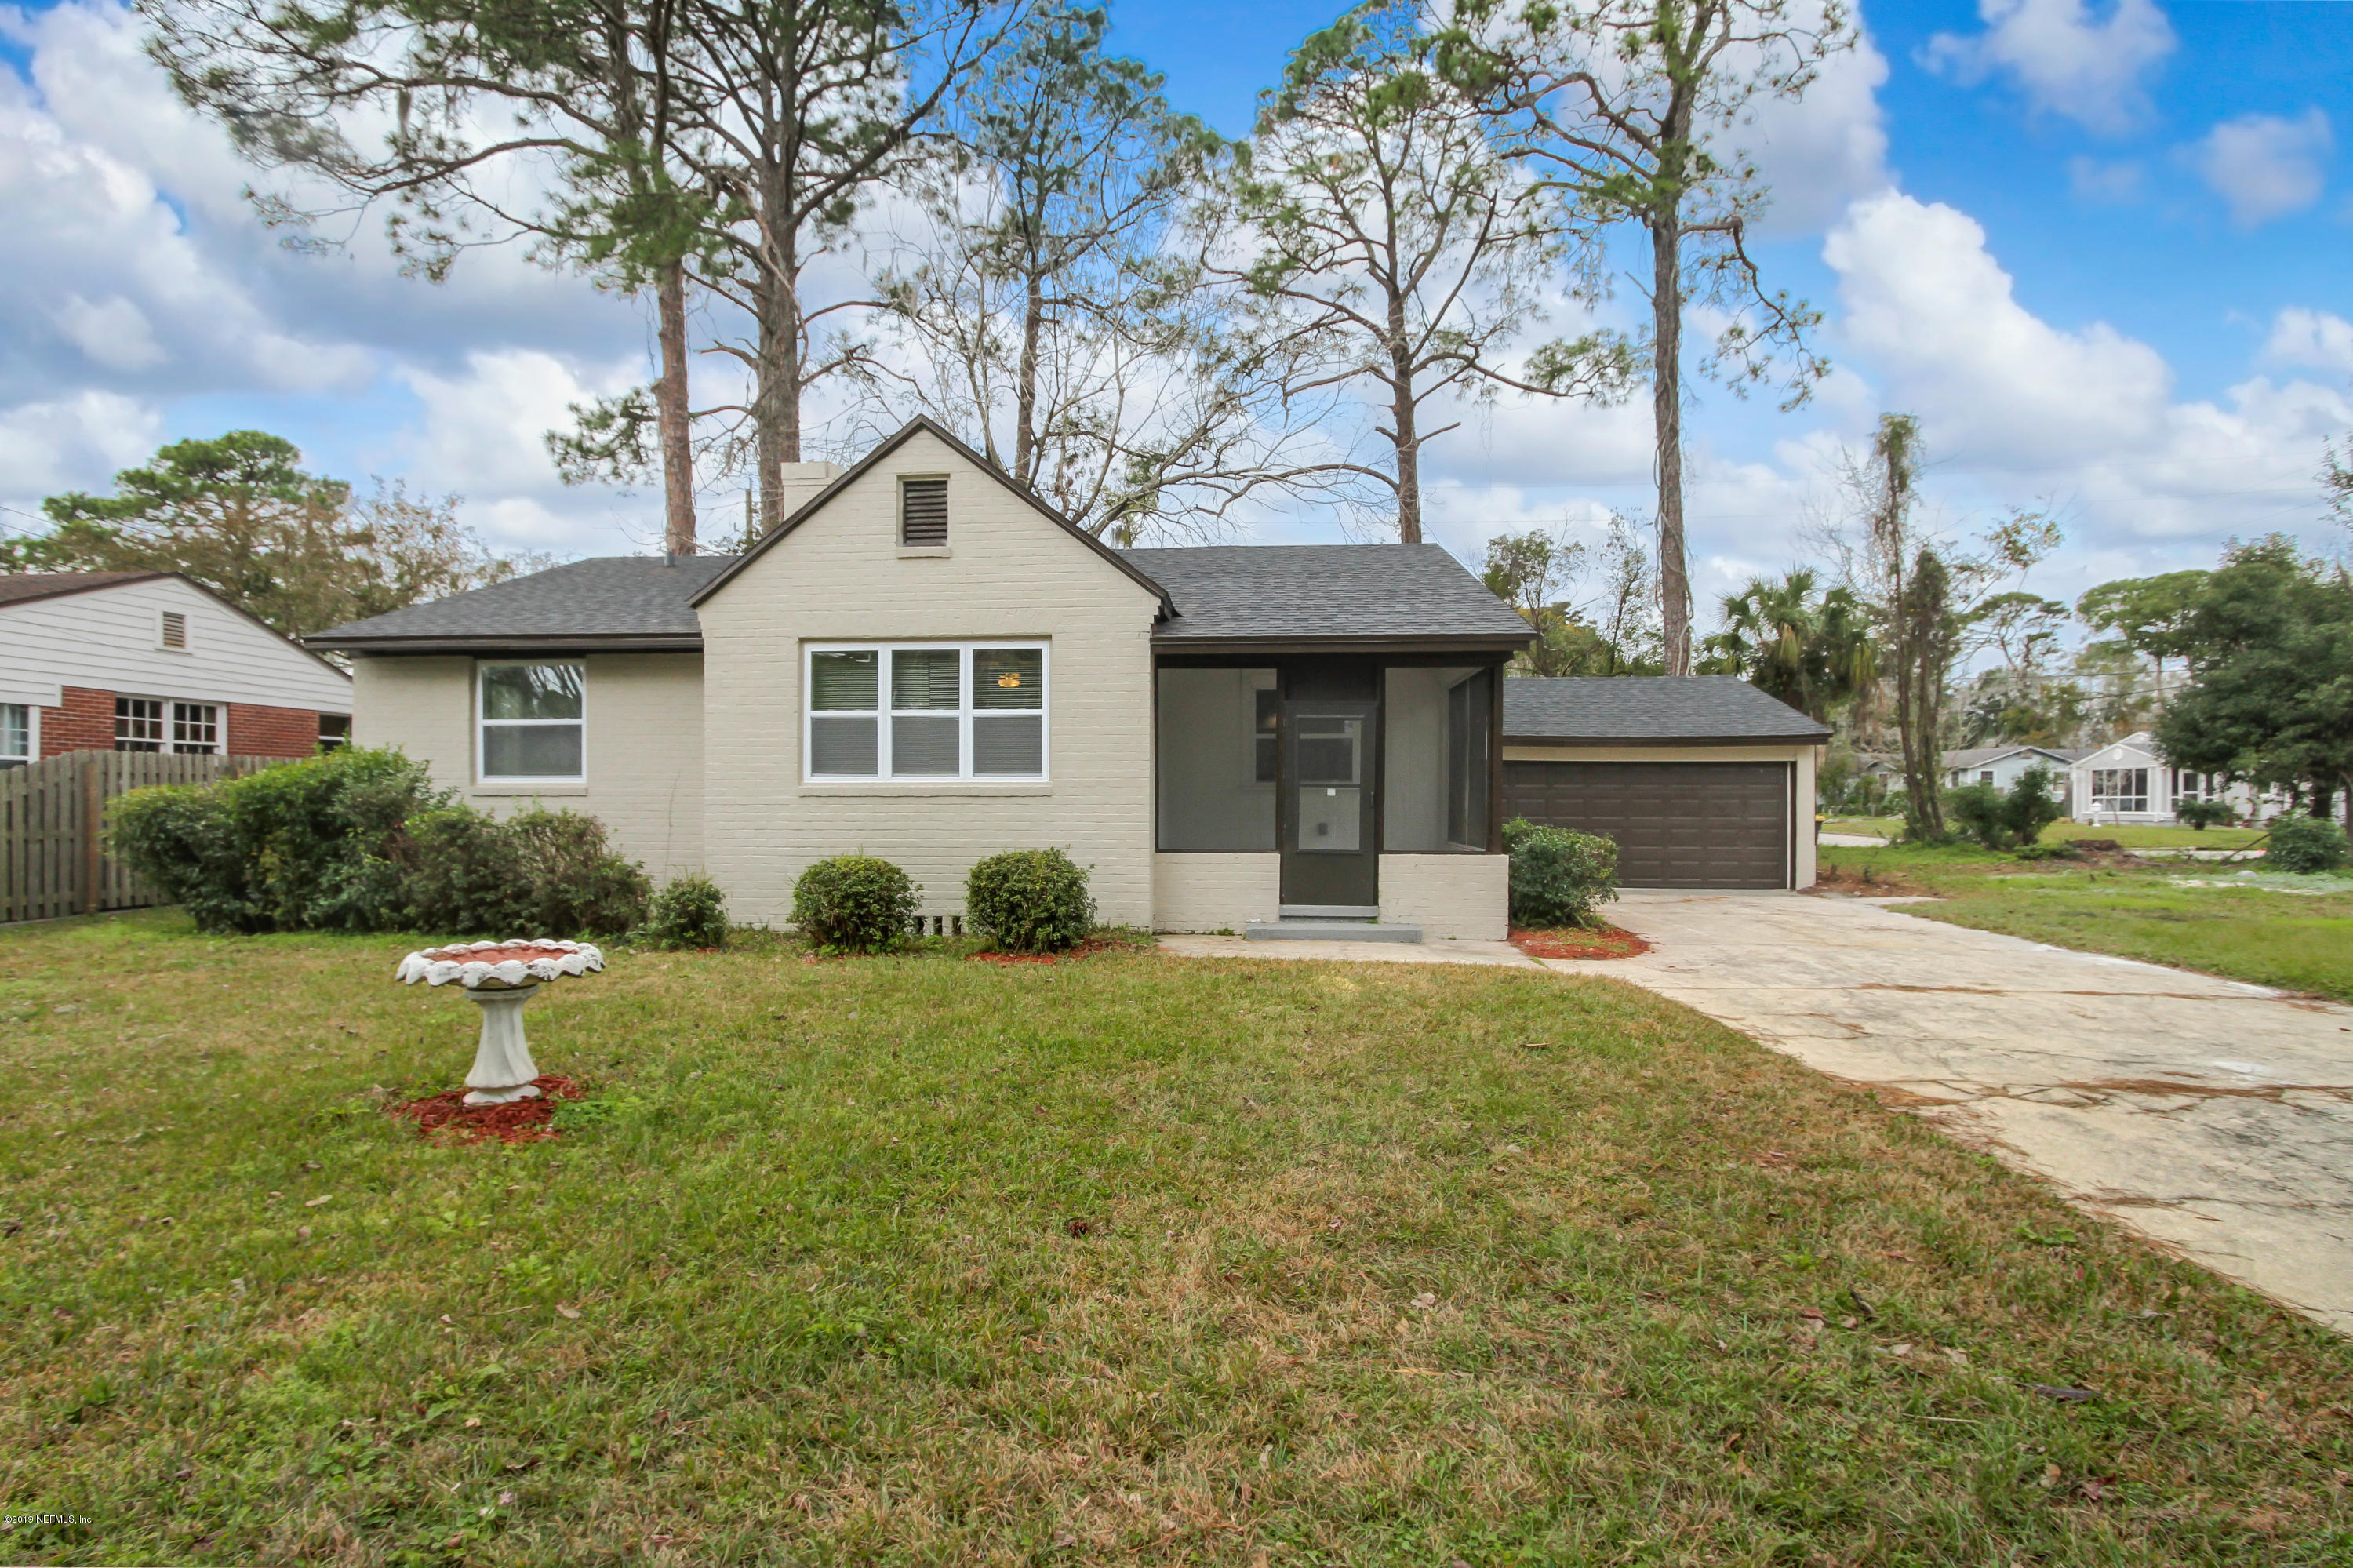 2104 TRAYMORE, JACKSONVILLE, FLORIDA 32207, 3 Bedrooms Bedrooms, ,2 BathroomsBathrooms,Residential - single family,For sale,TRAYMORE,974933